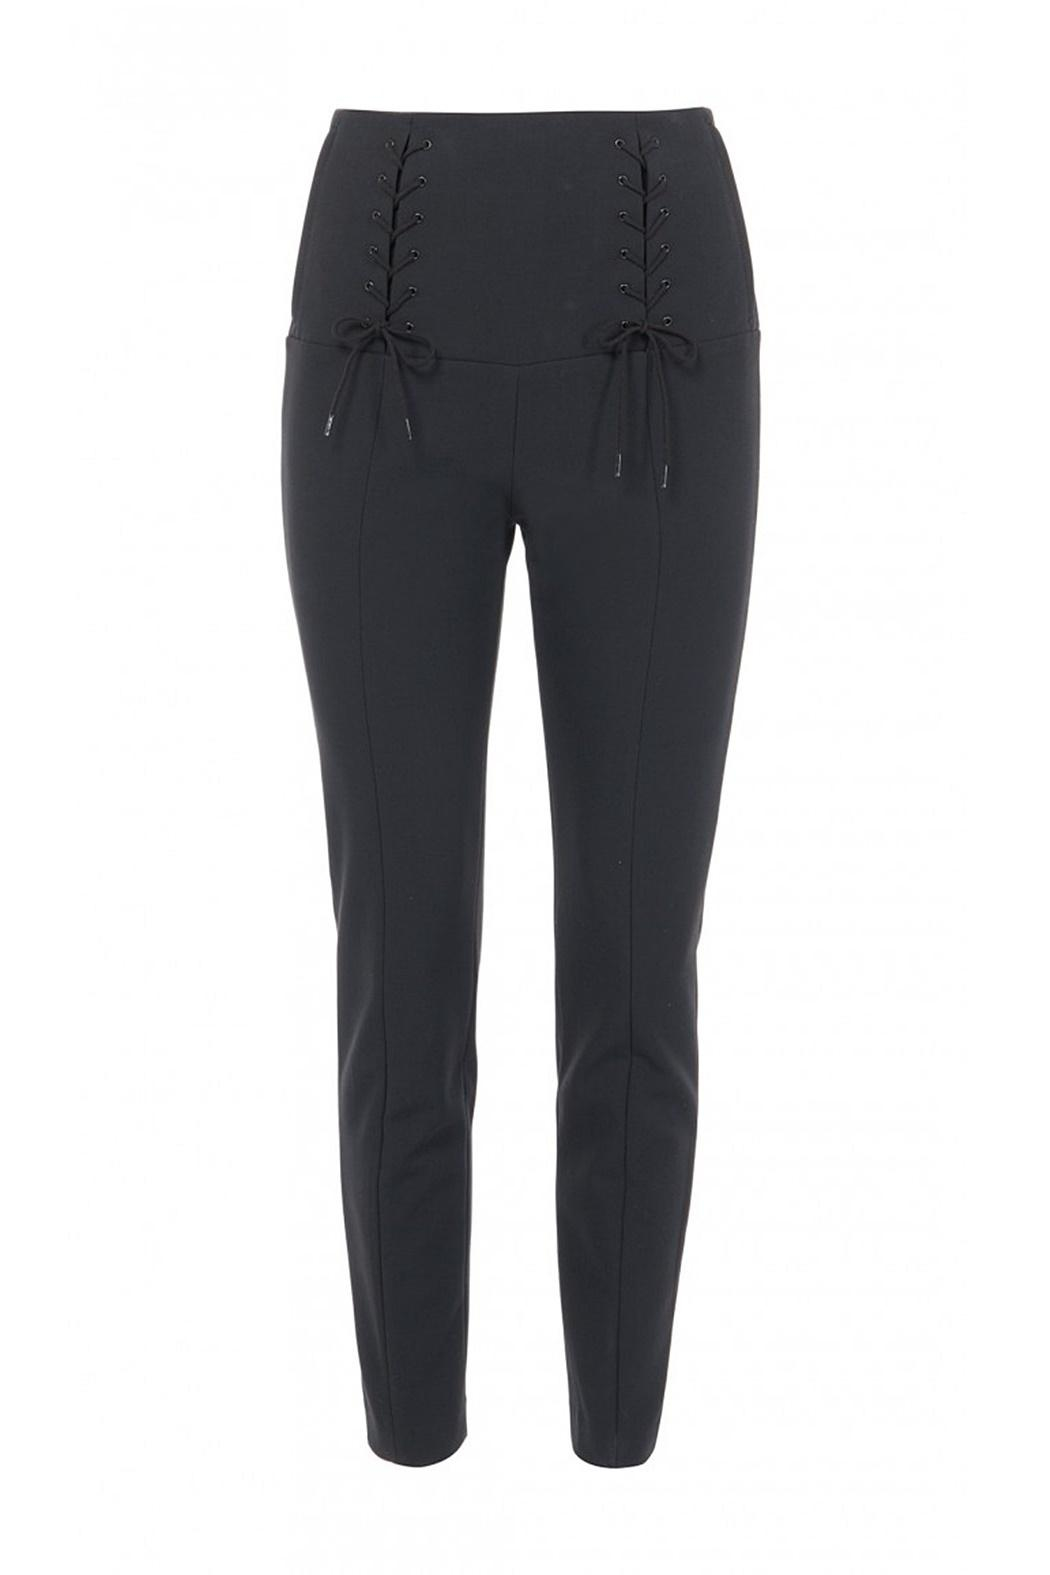 Tibi Anson Tie Pant - Front Cropped Image